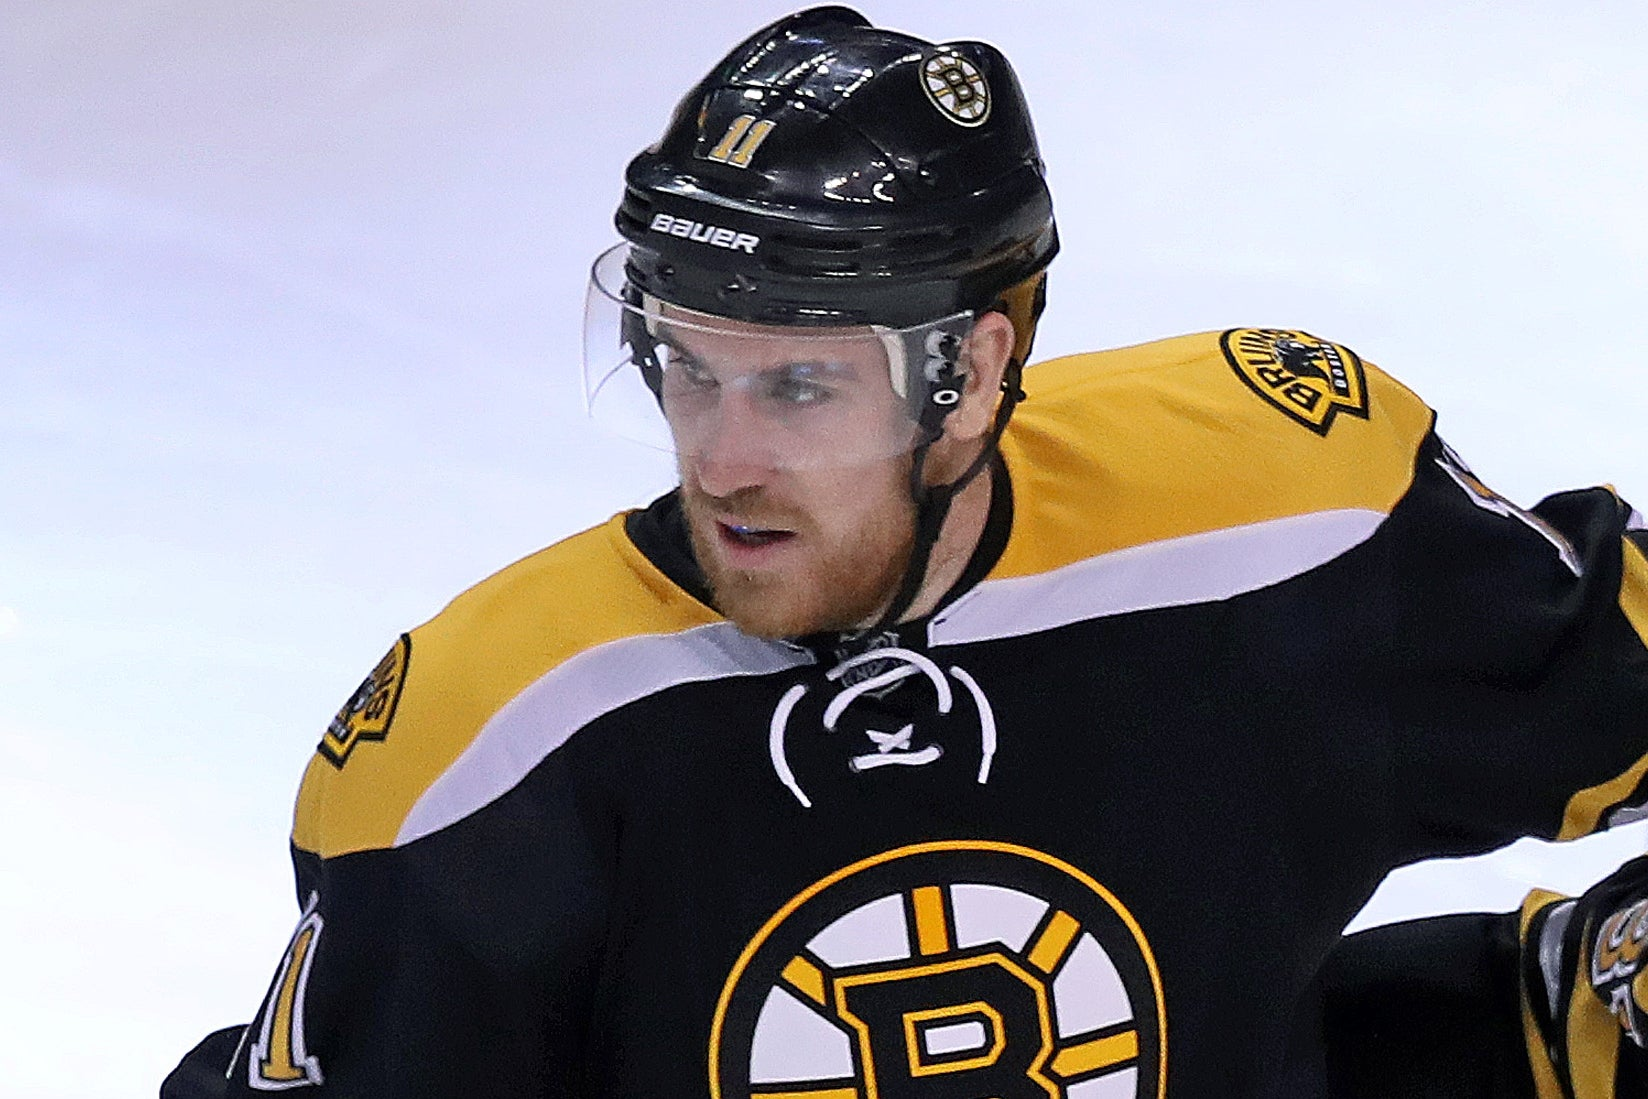 Jimmy Hayes Bruins